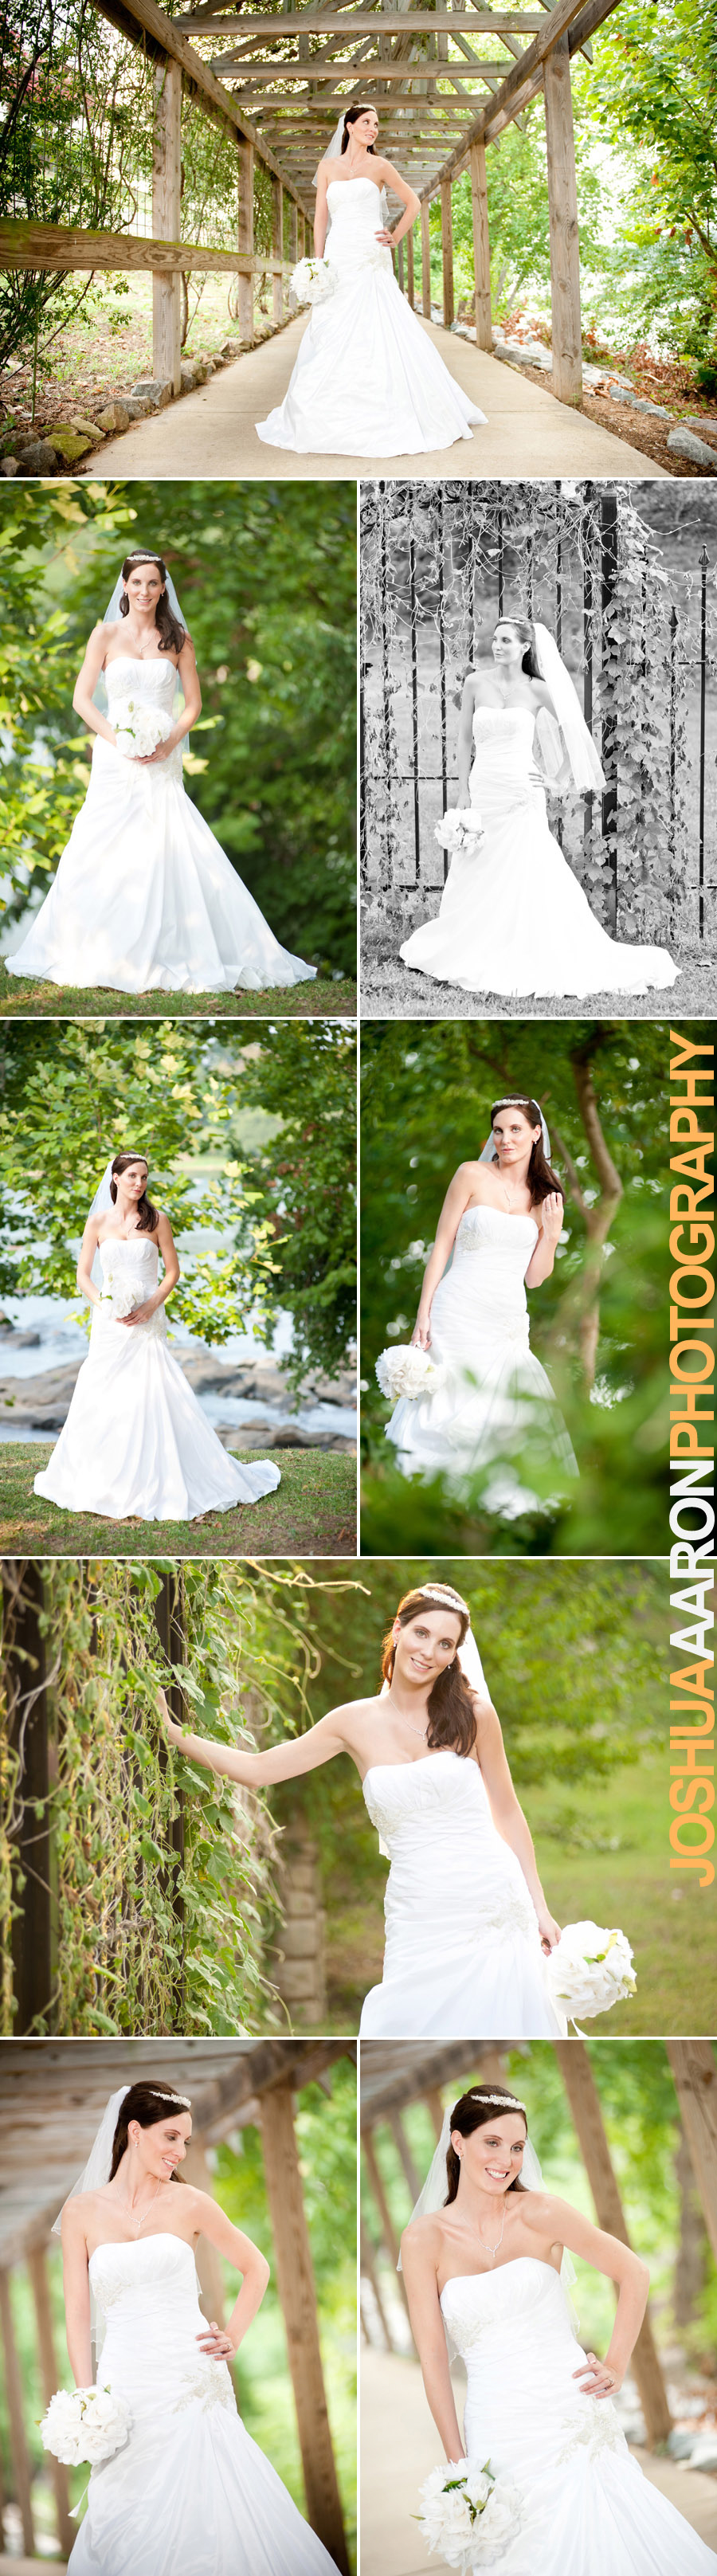 Bridal portraits at the Columbia Riverwalk